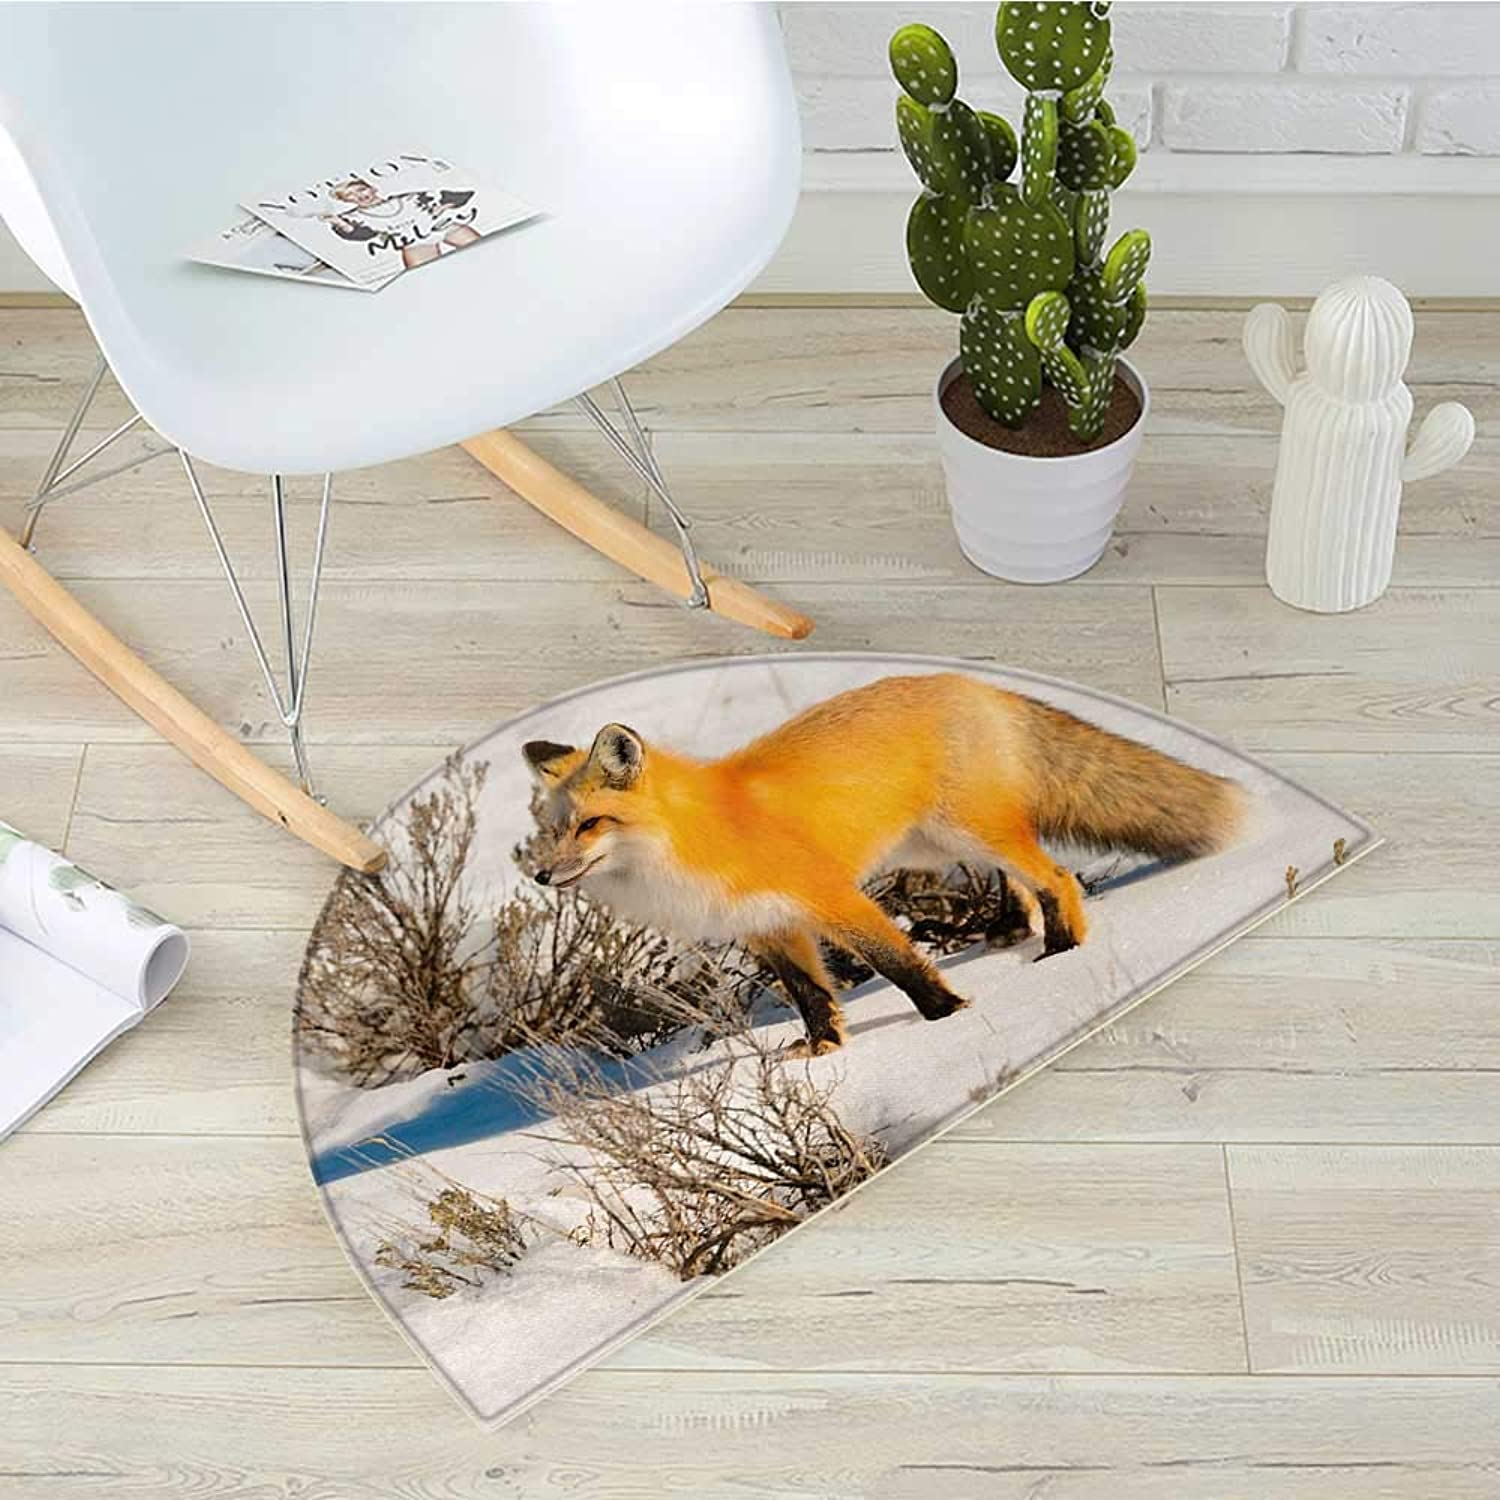 Fox Half Round Door mats Red Fox in Nature Snowy Mountain Cold Winter Scenery Wildlife Carnivore Image Bathroom Mat H 39.3  xD 59  Marigold Brown White